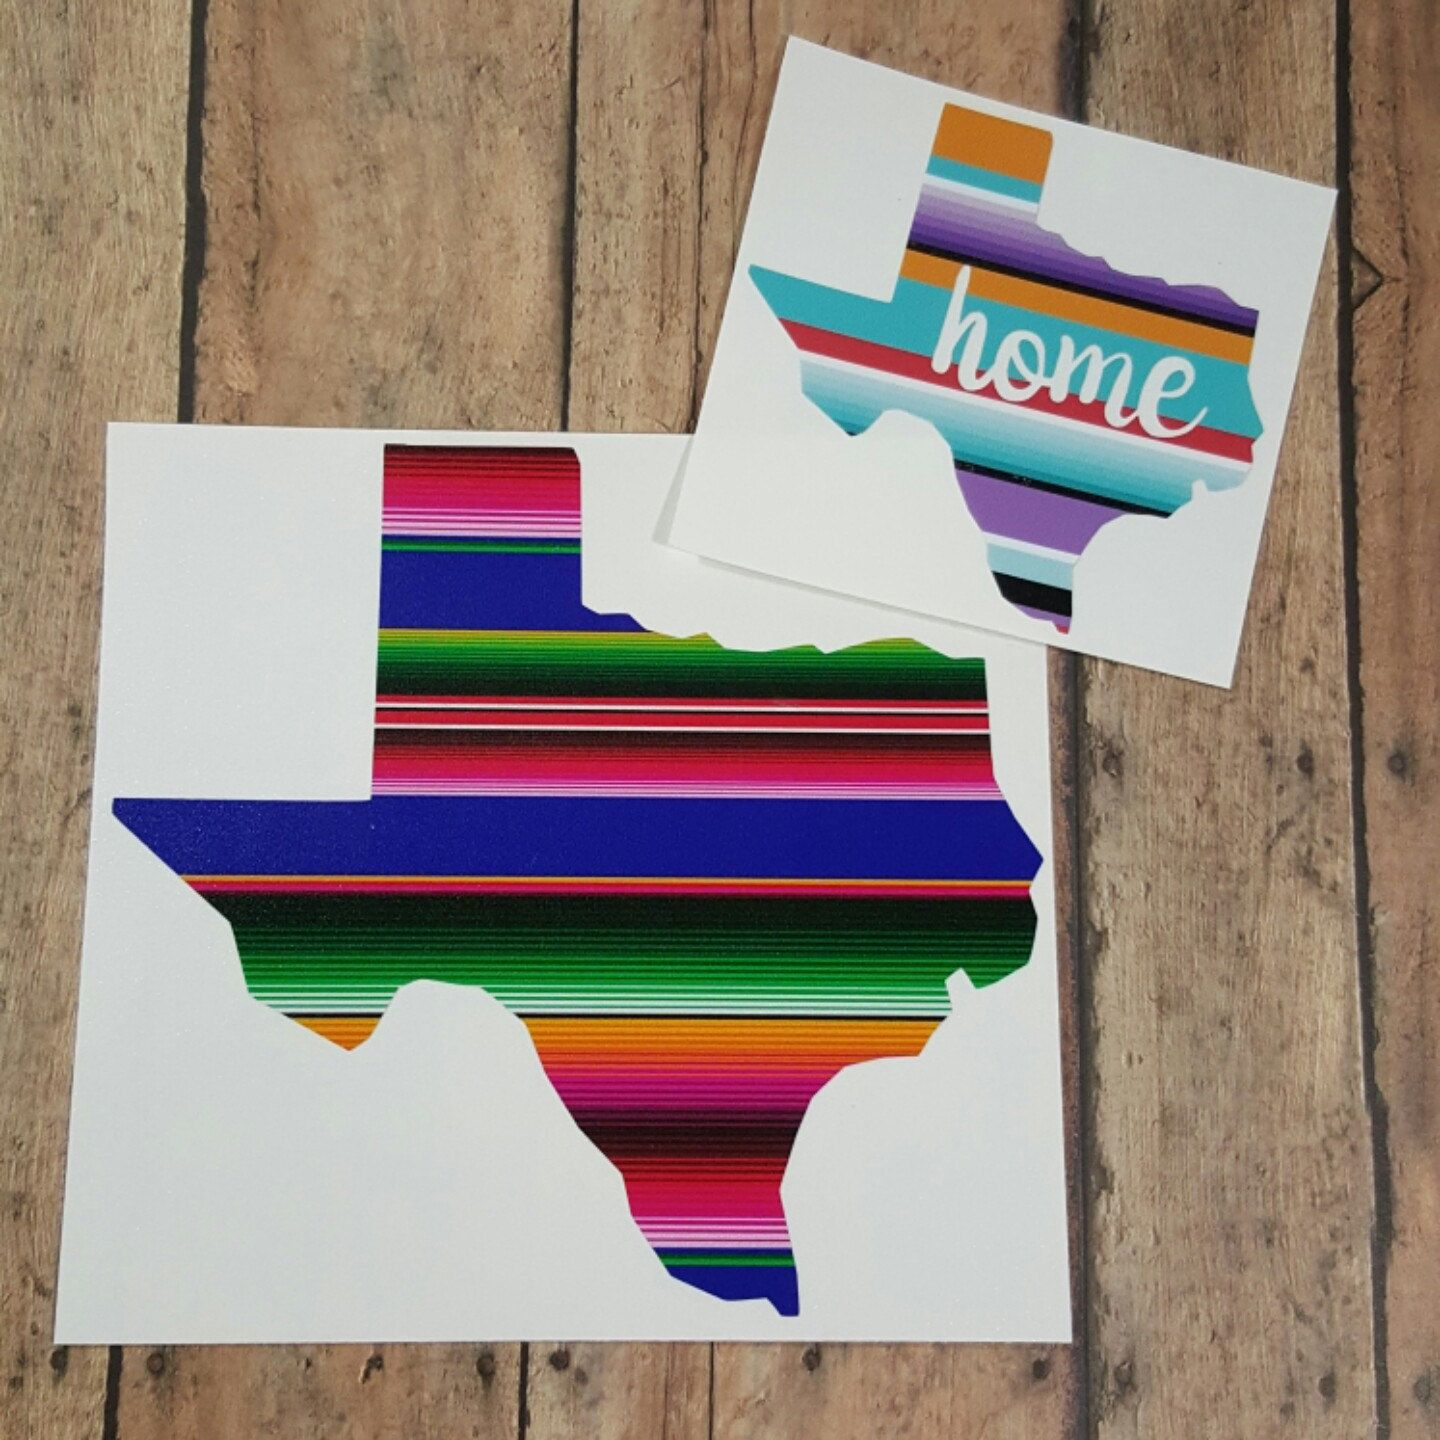 Serape Blanket Pattern State Decal State Of Texas Decals Texas - How to make vinyl monogram decals with cricut